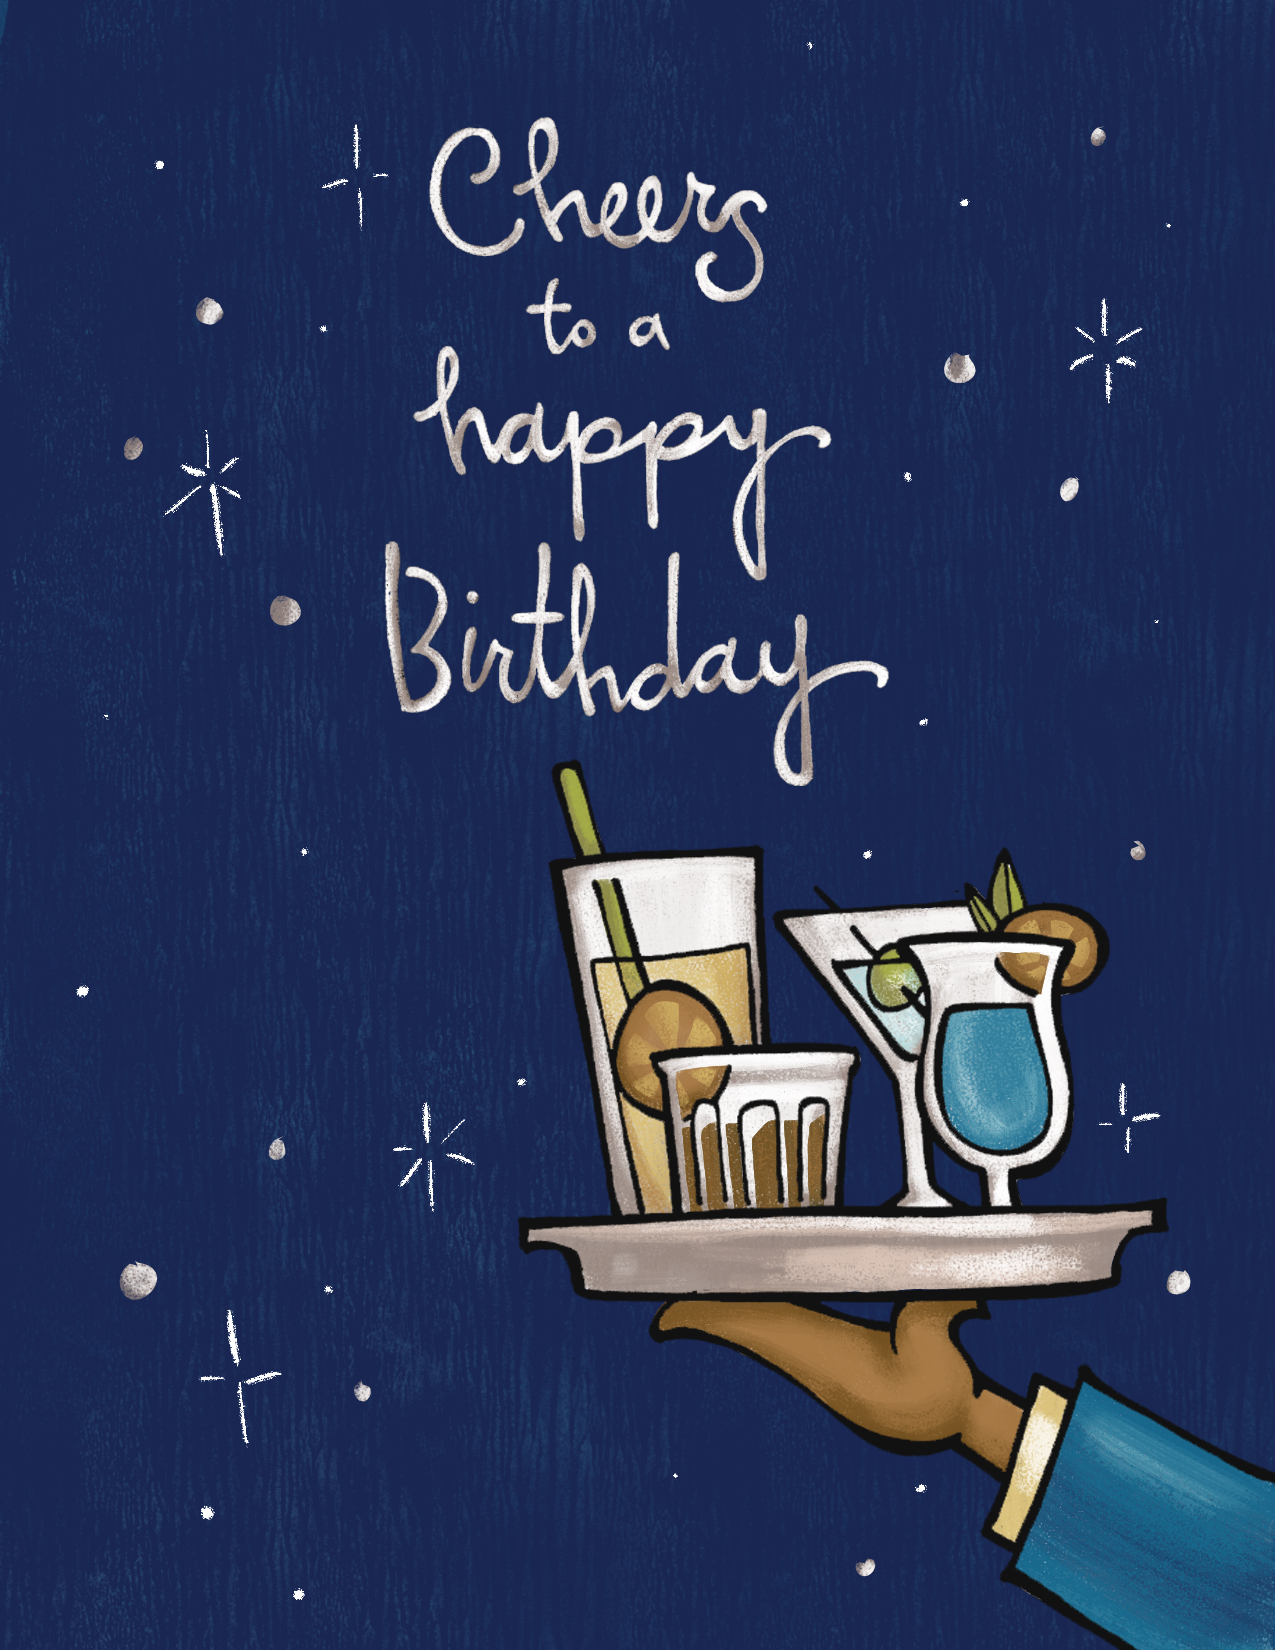 Cheers Birthday.jpg